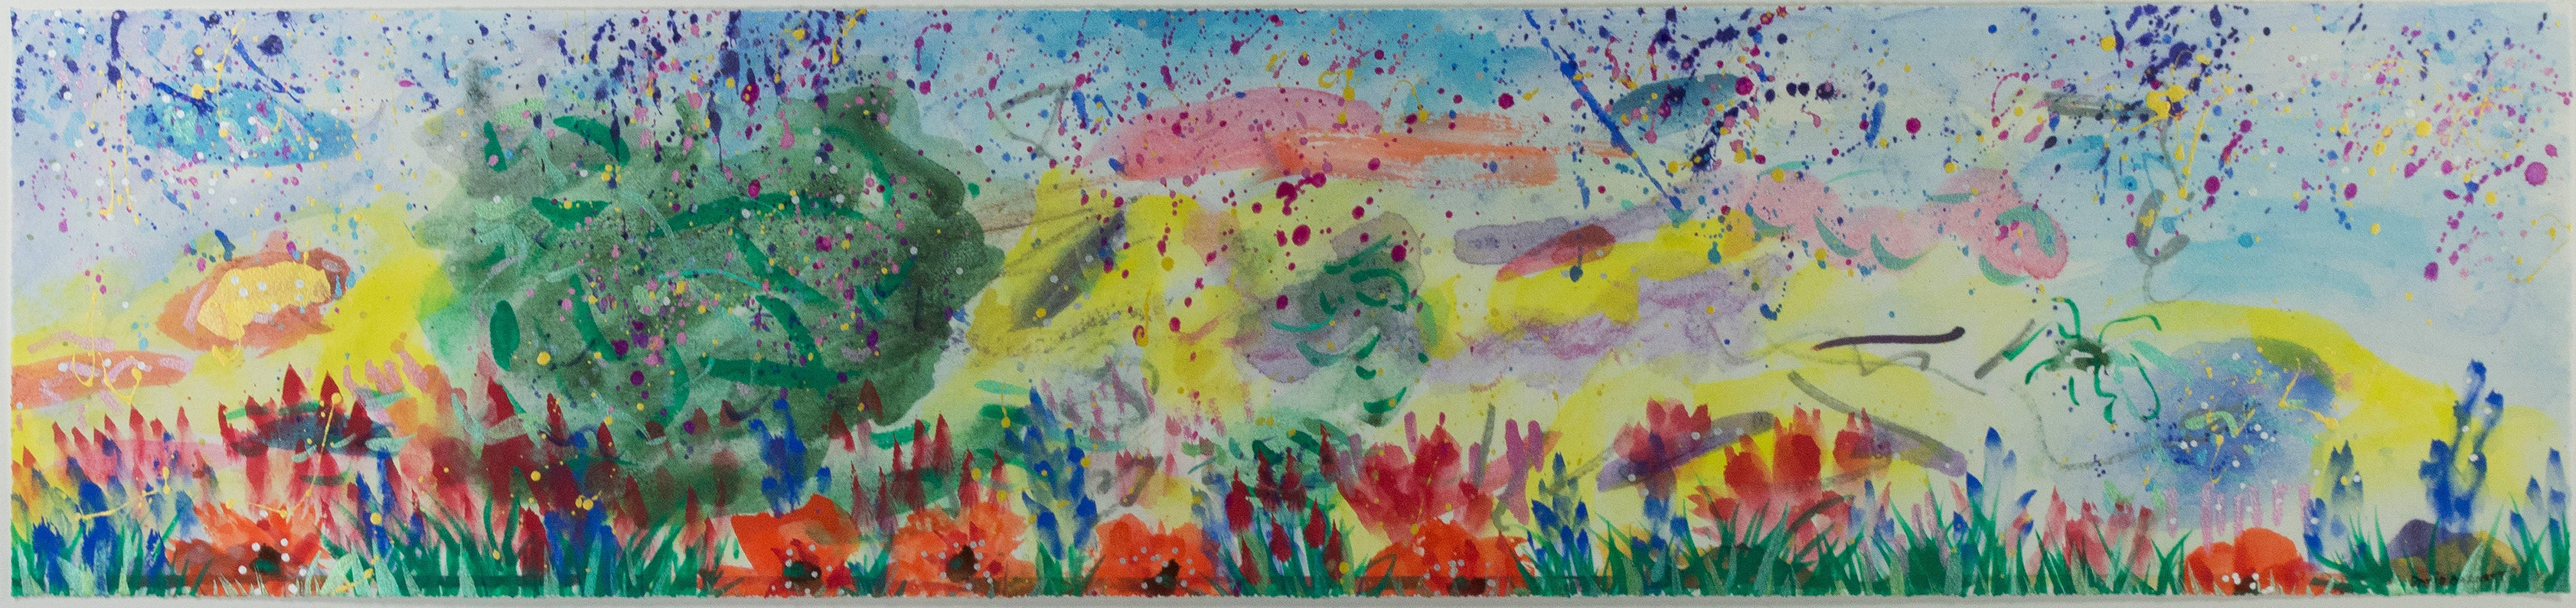 """Abstract with Grass and Poppies I,"" Mixed Media Landscape by David Barnett"